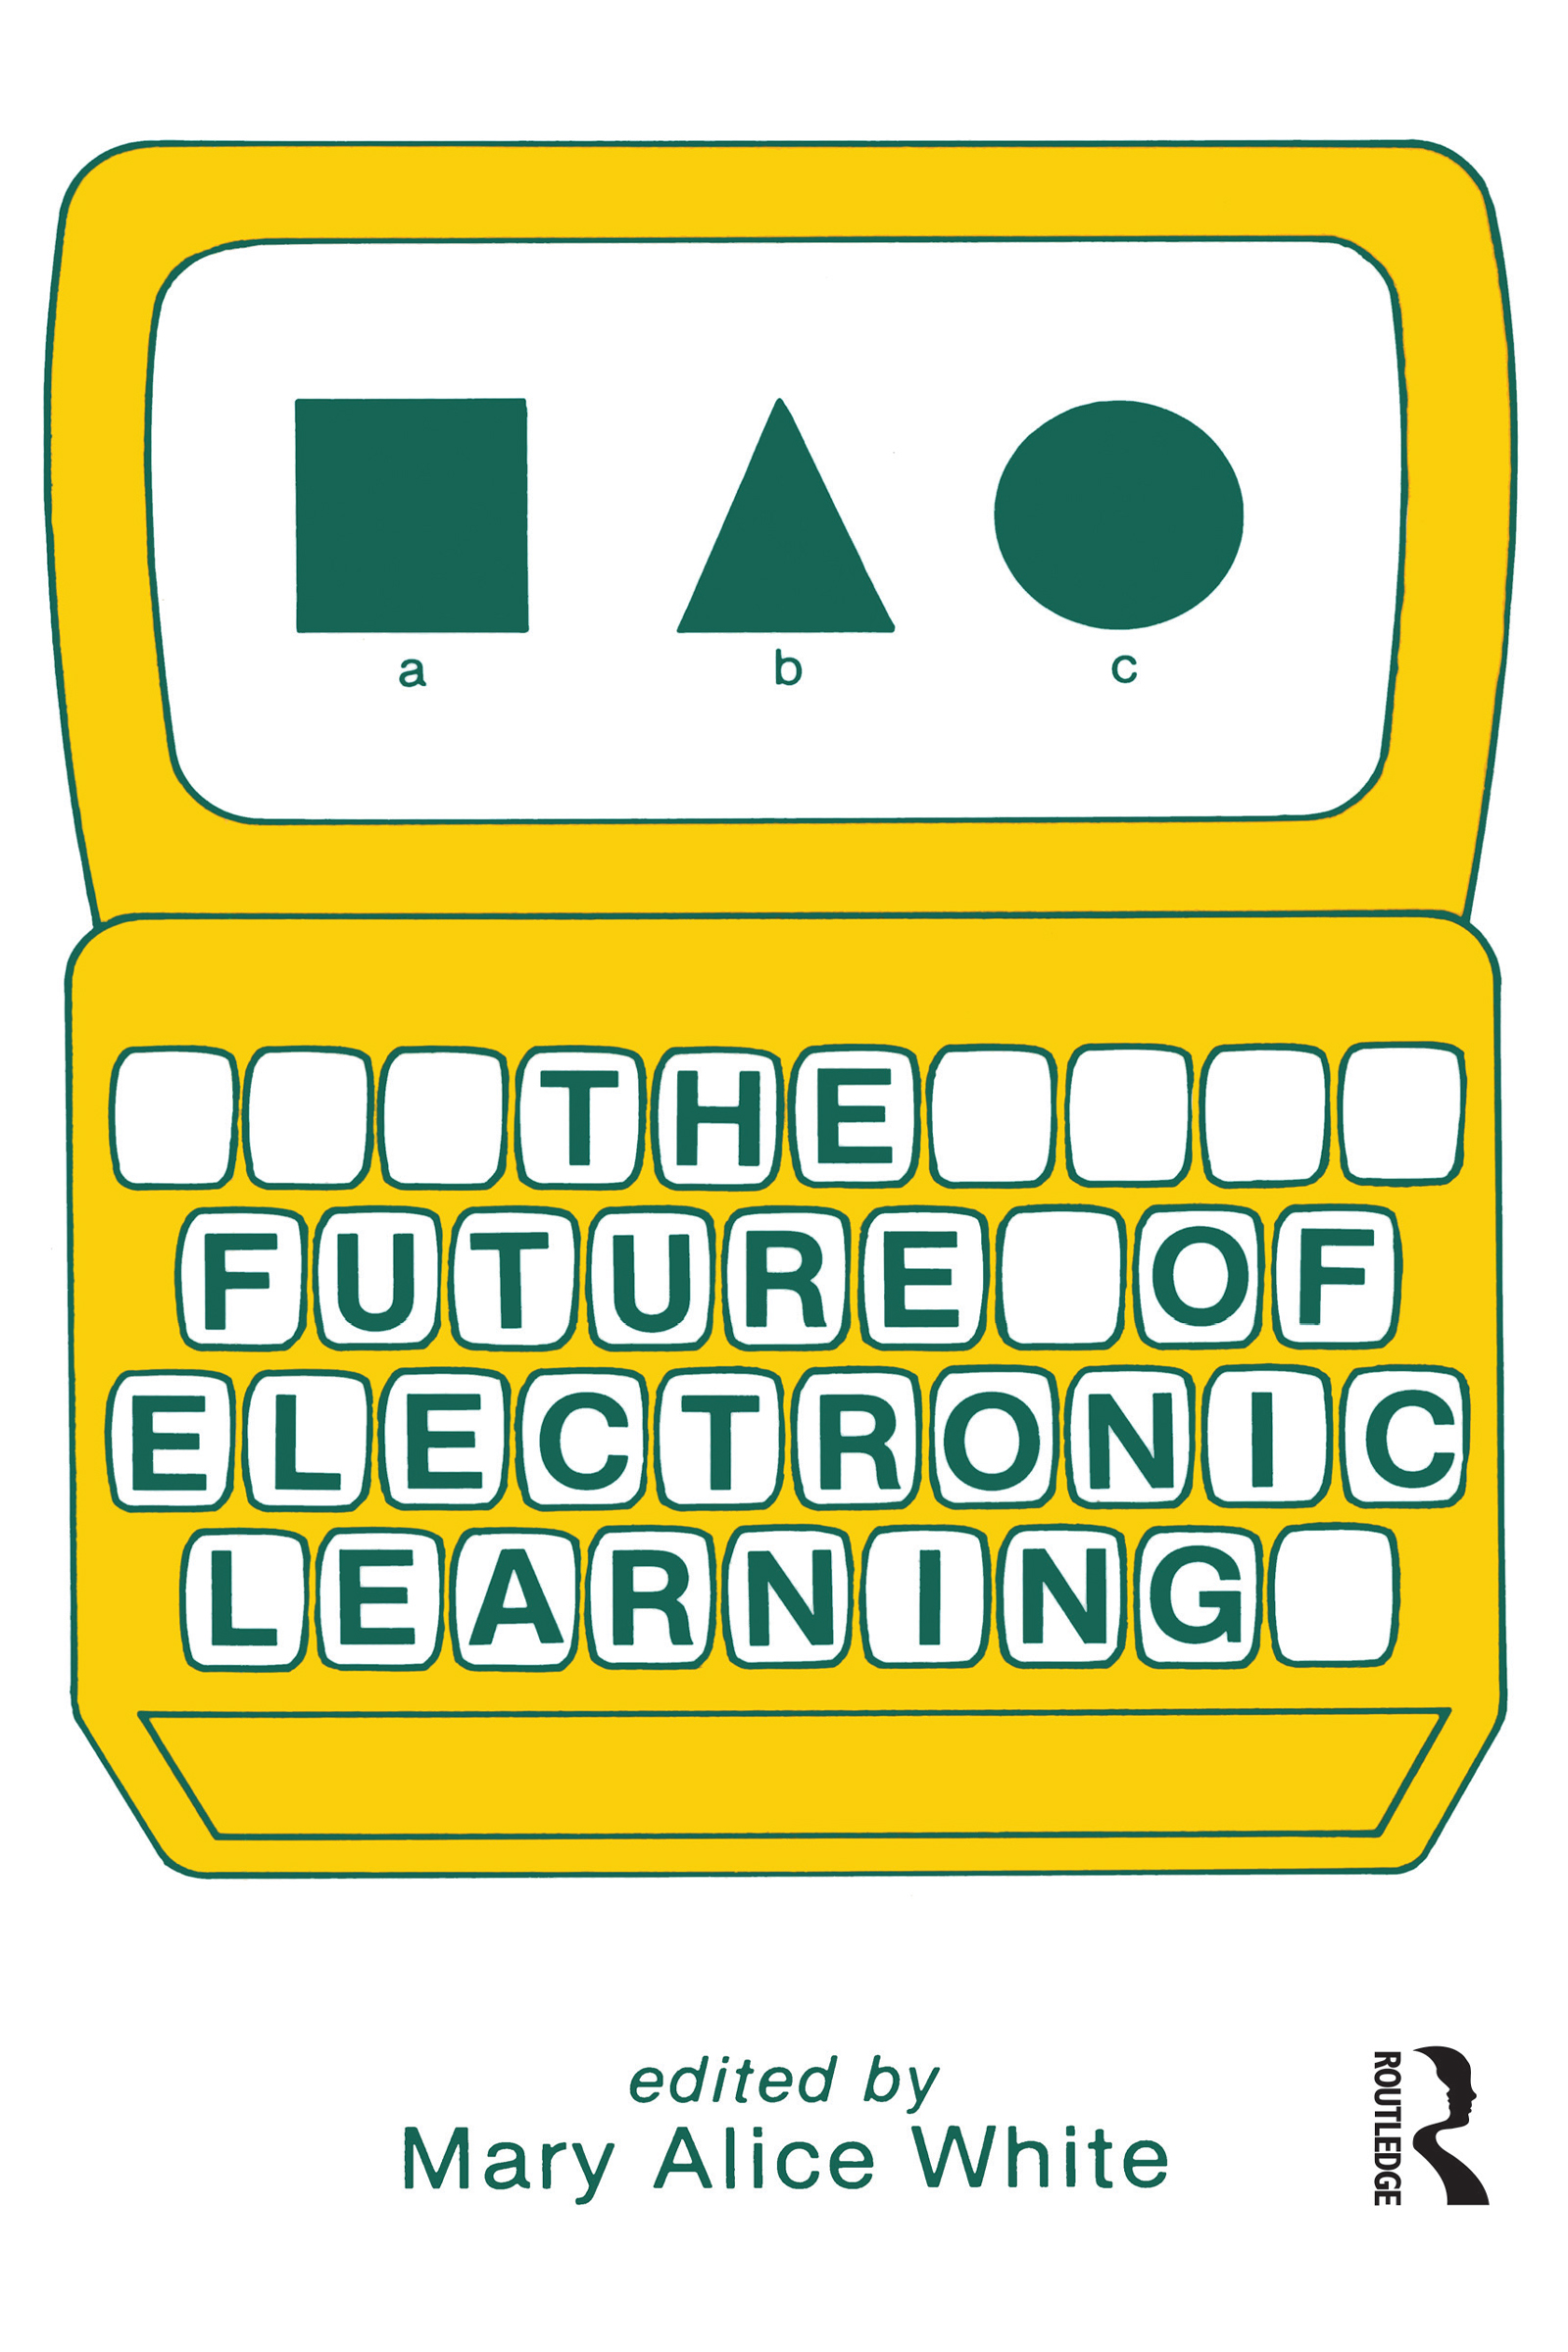 The Future of Electronic Learning (Paperback) book cover